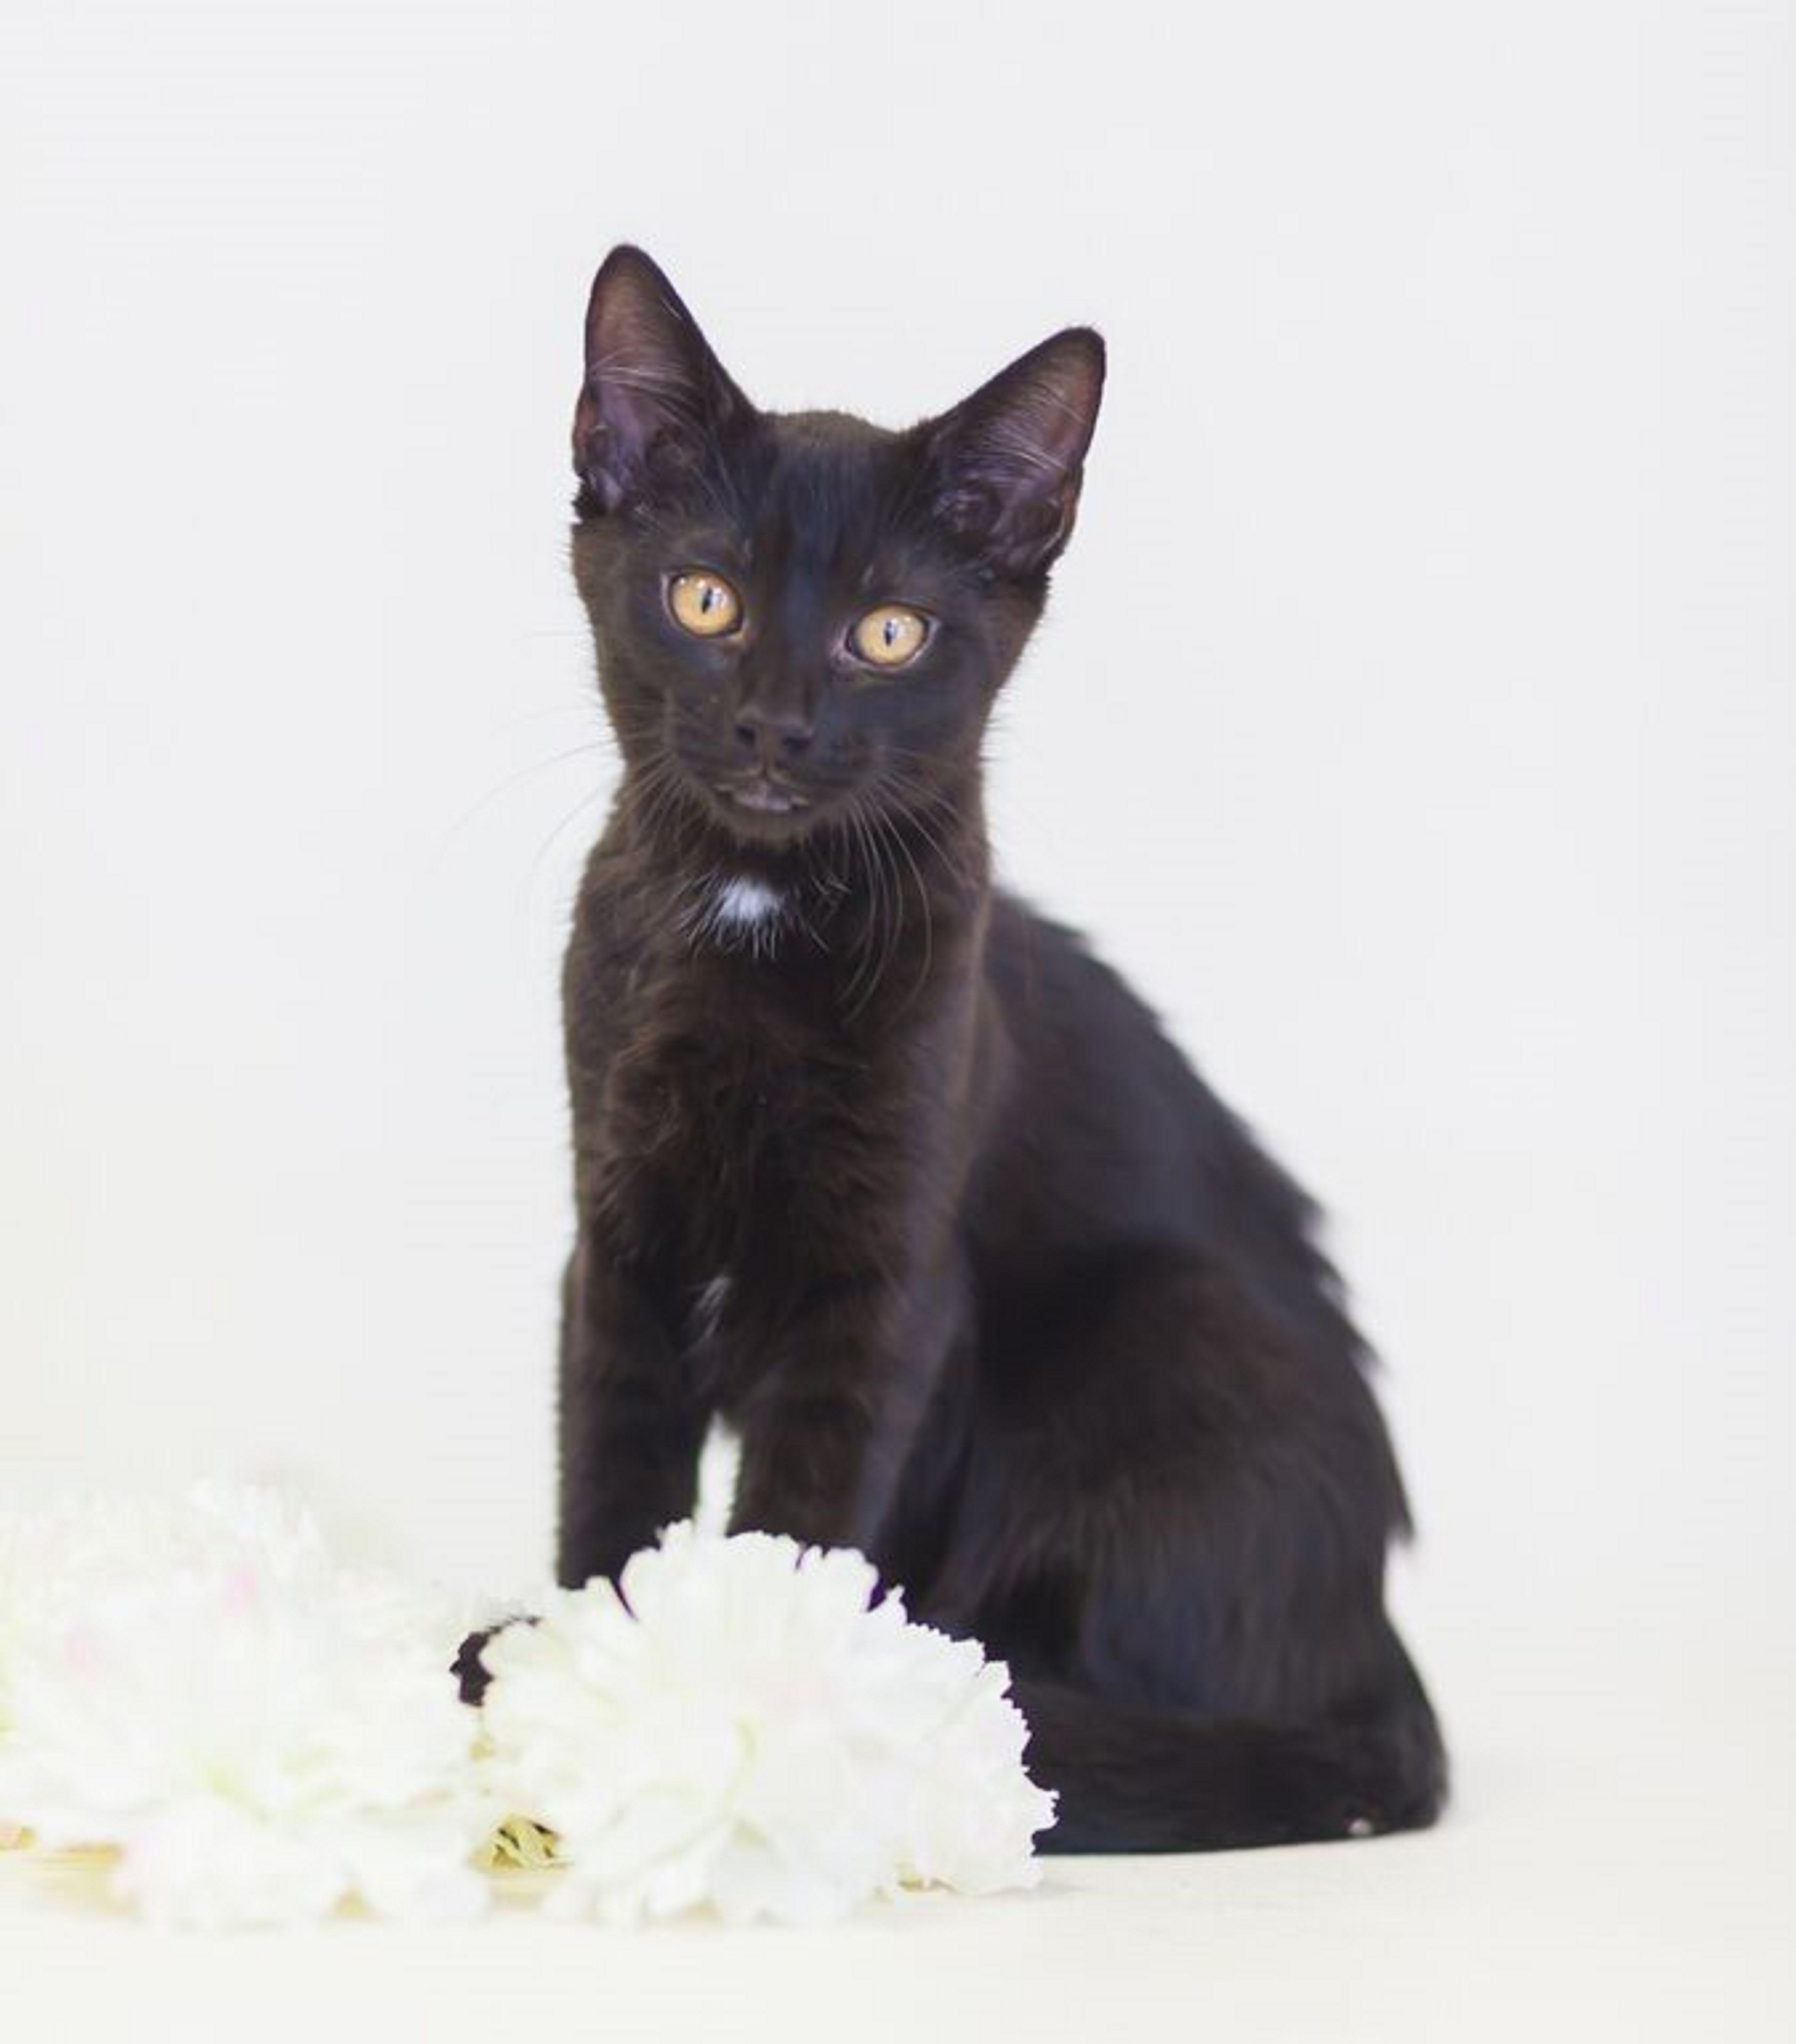 Dunn Is A Male Domestic Short Hair Black Kitten He Is Approximately 4 Months Old He Is Very Playful Gets Along Well With Other Cats Pets Black Kitten Kitten